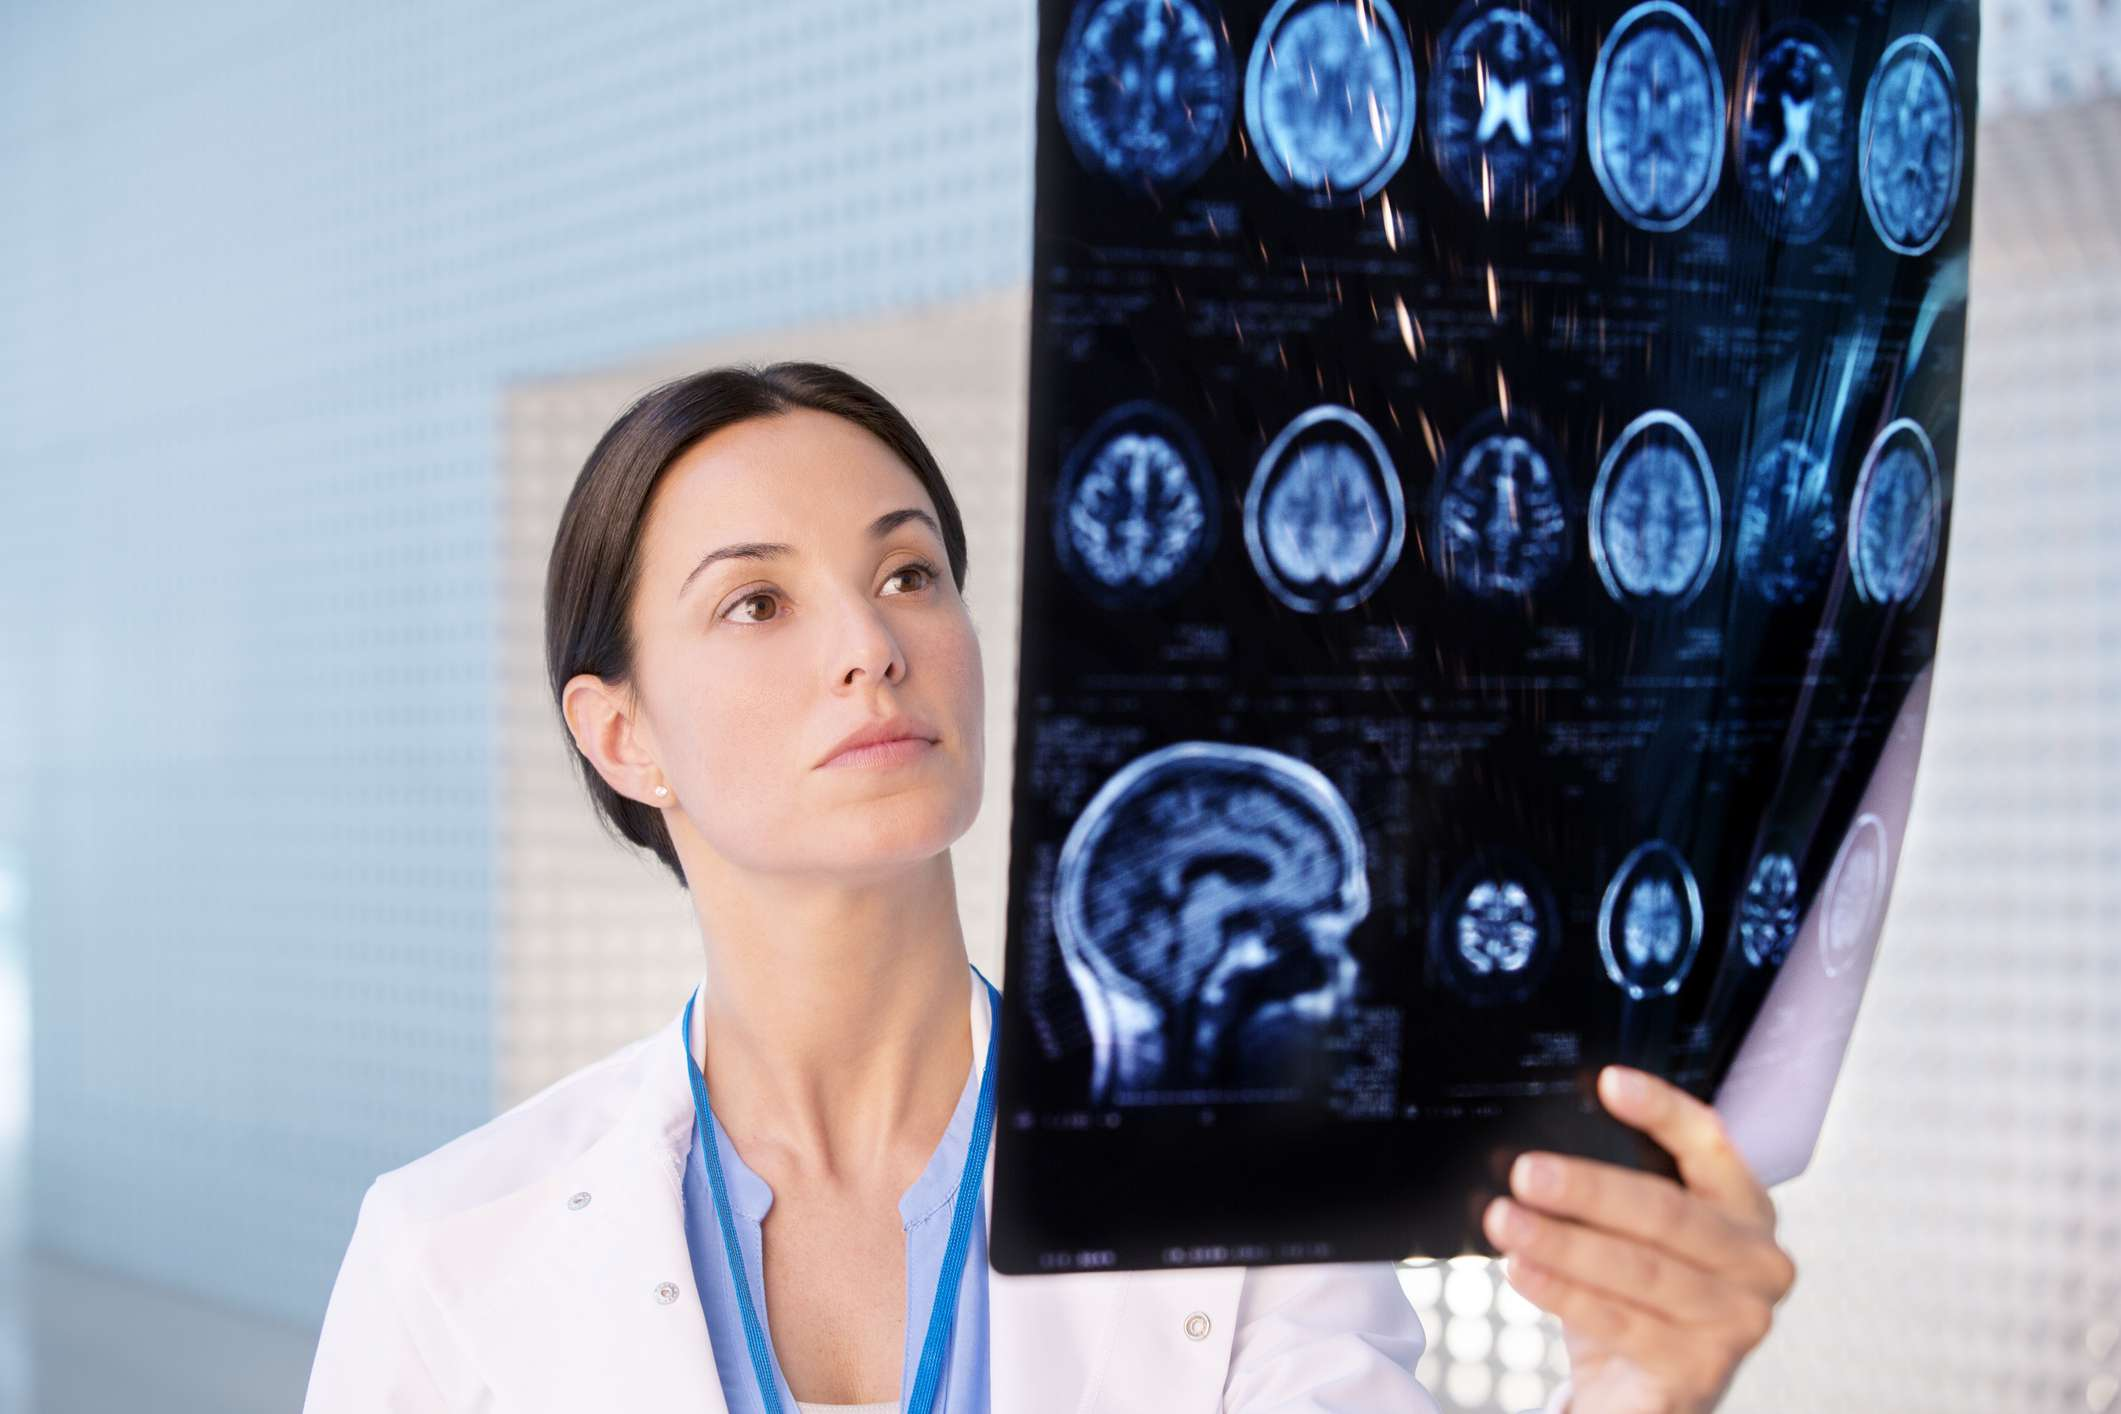 Doctor looking at CT scans of the brain